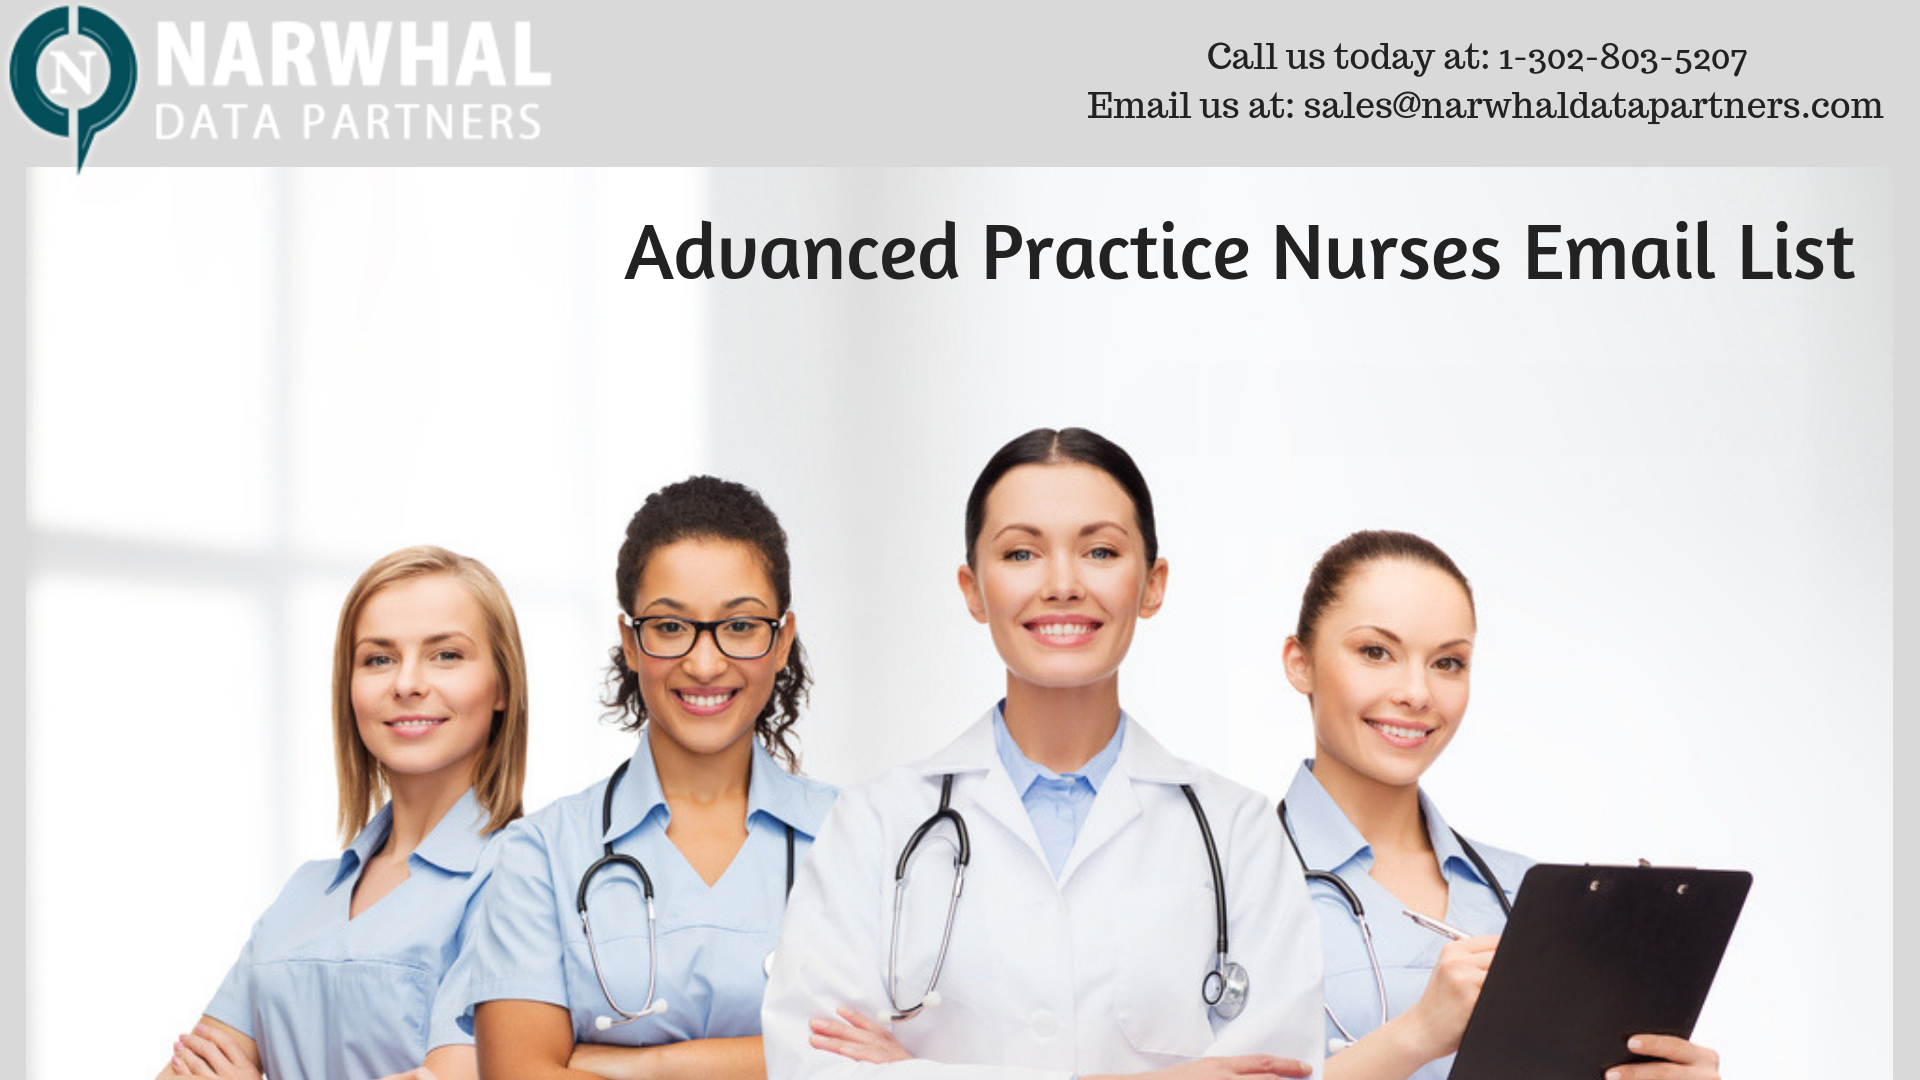 http://narwhaldatapartners.com/advanced-practice-nurses-email-list.html